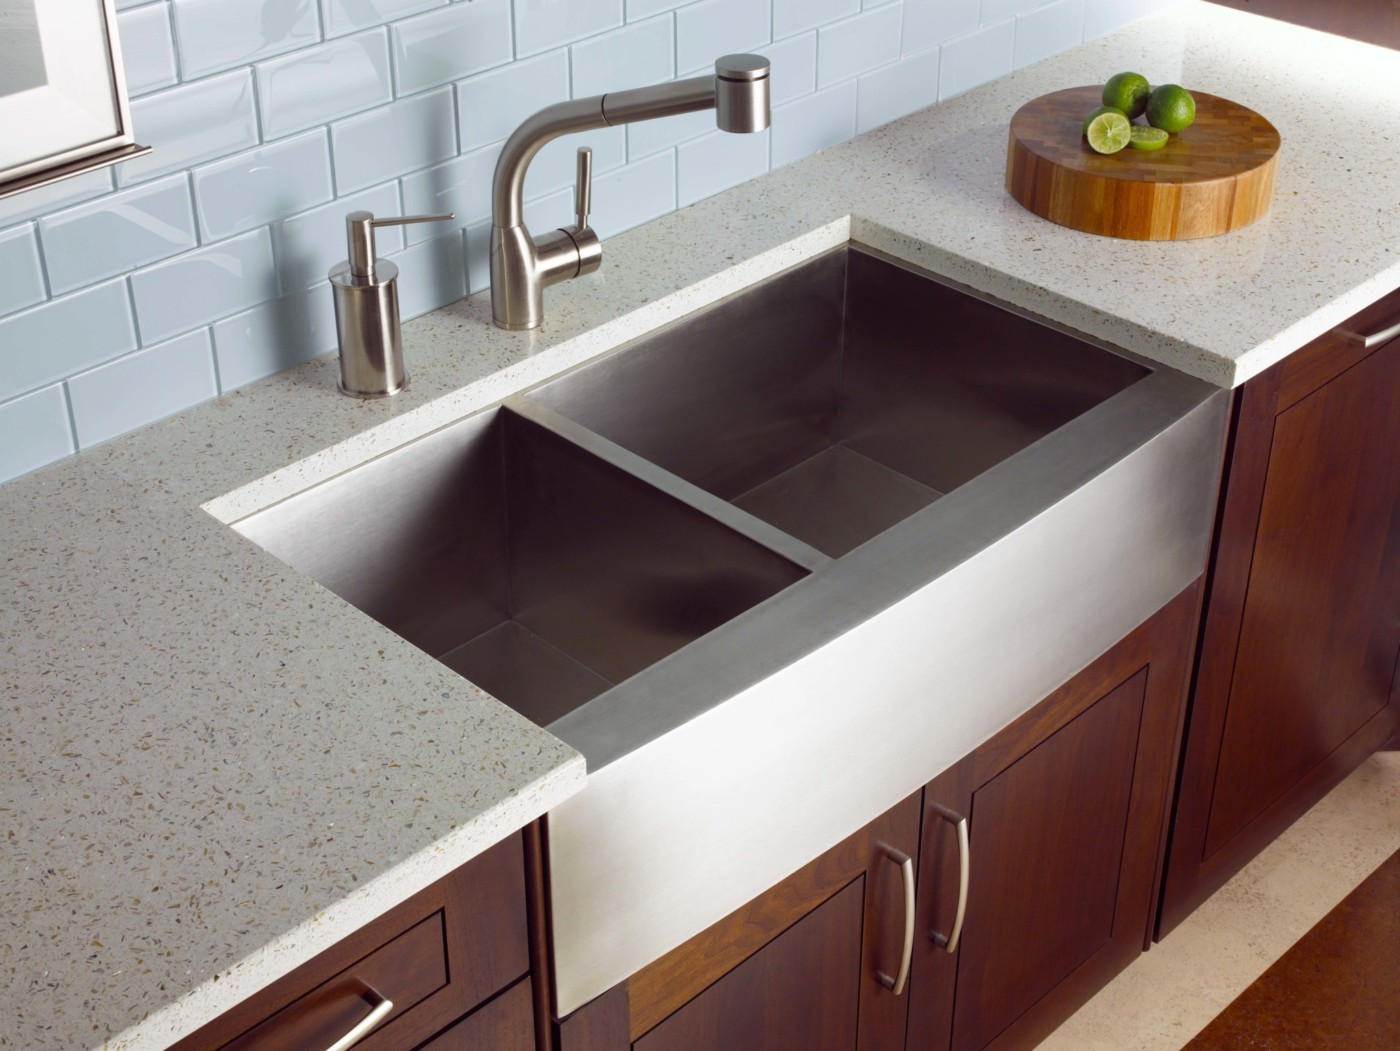 Recycled Countertops 3rings Revolutionary Recycled Countertops 3rings